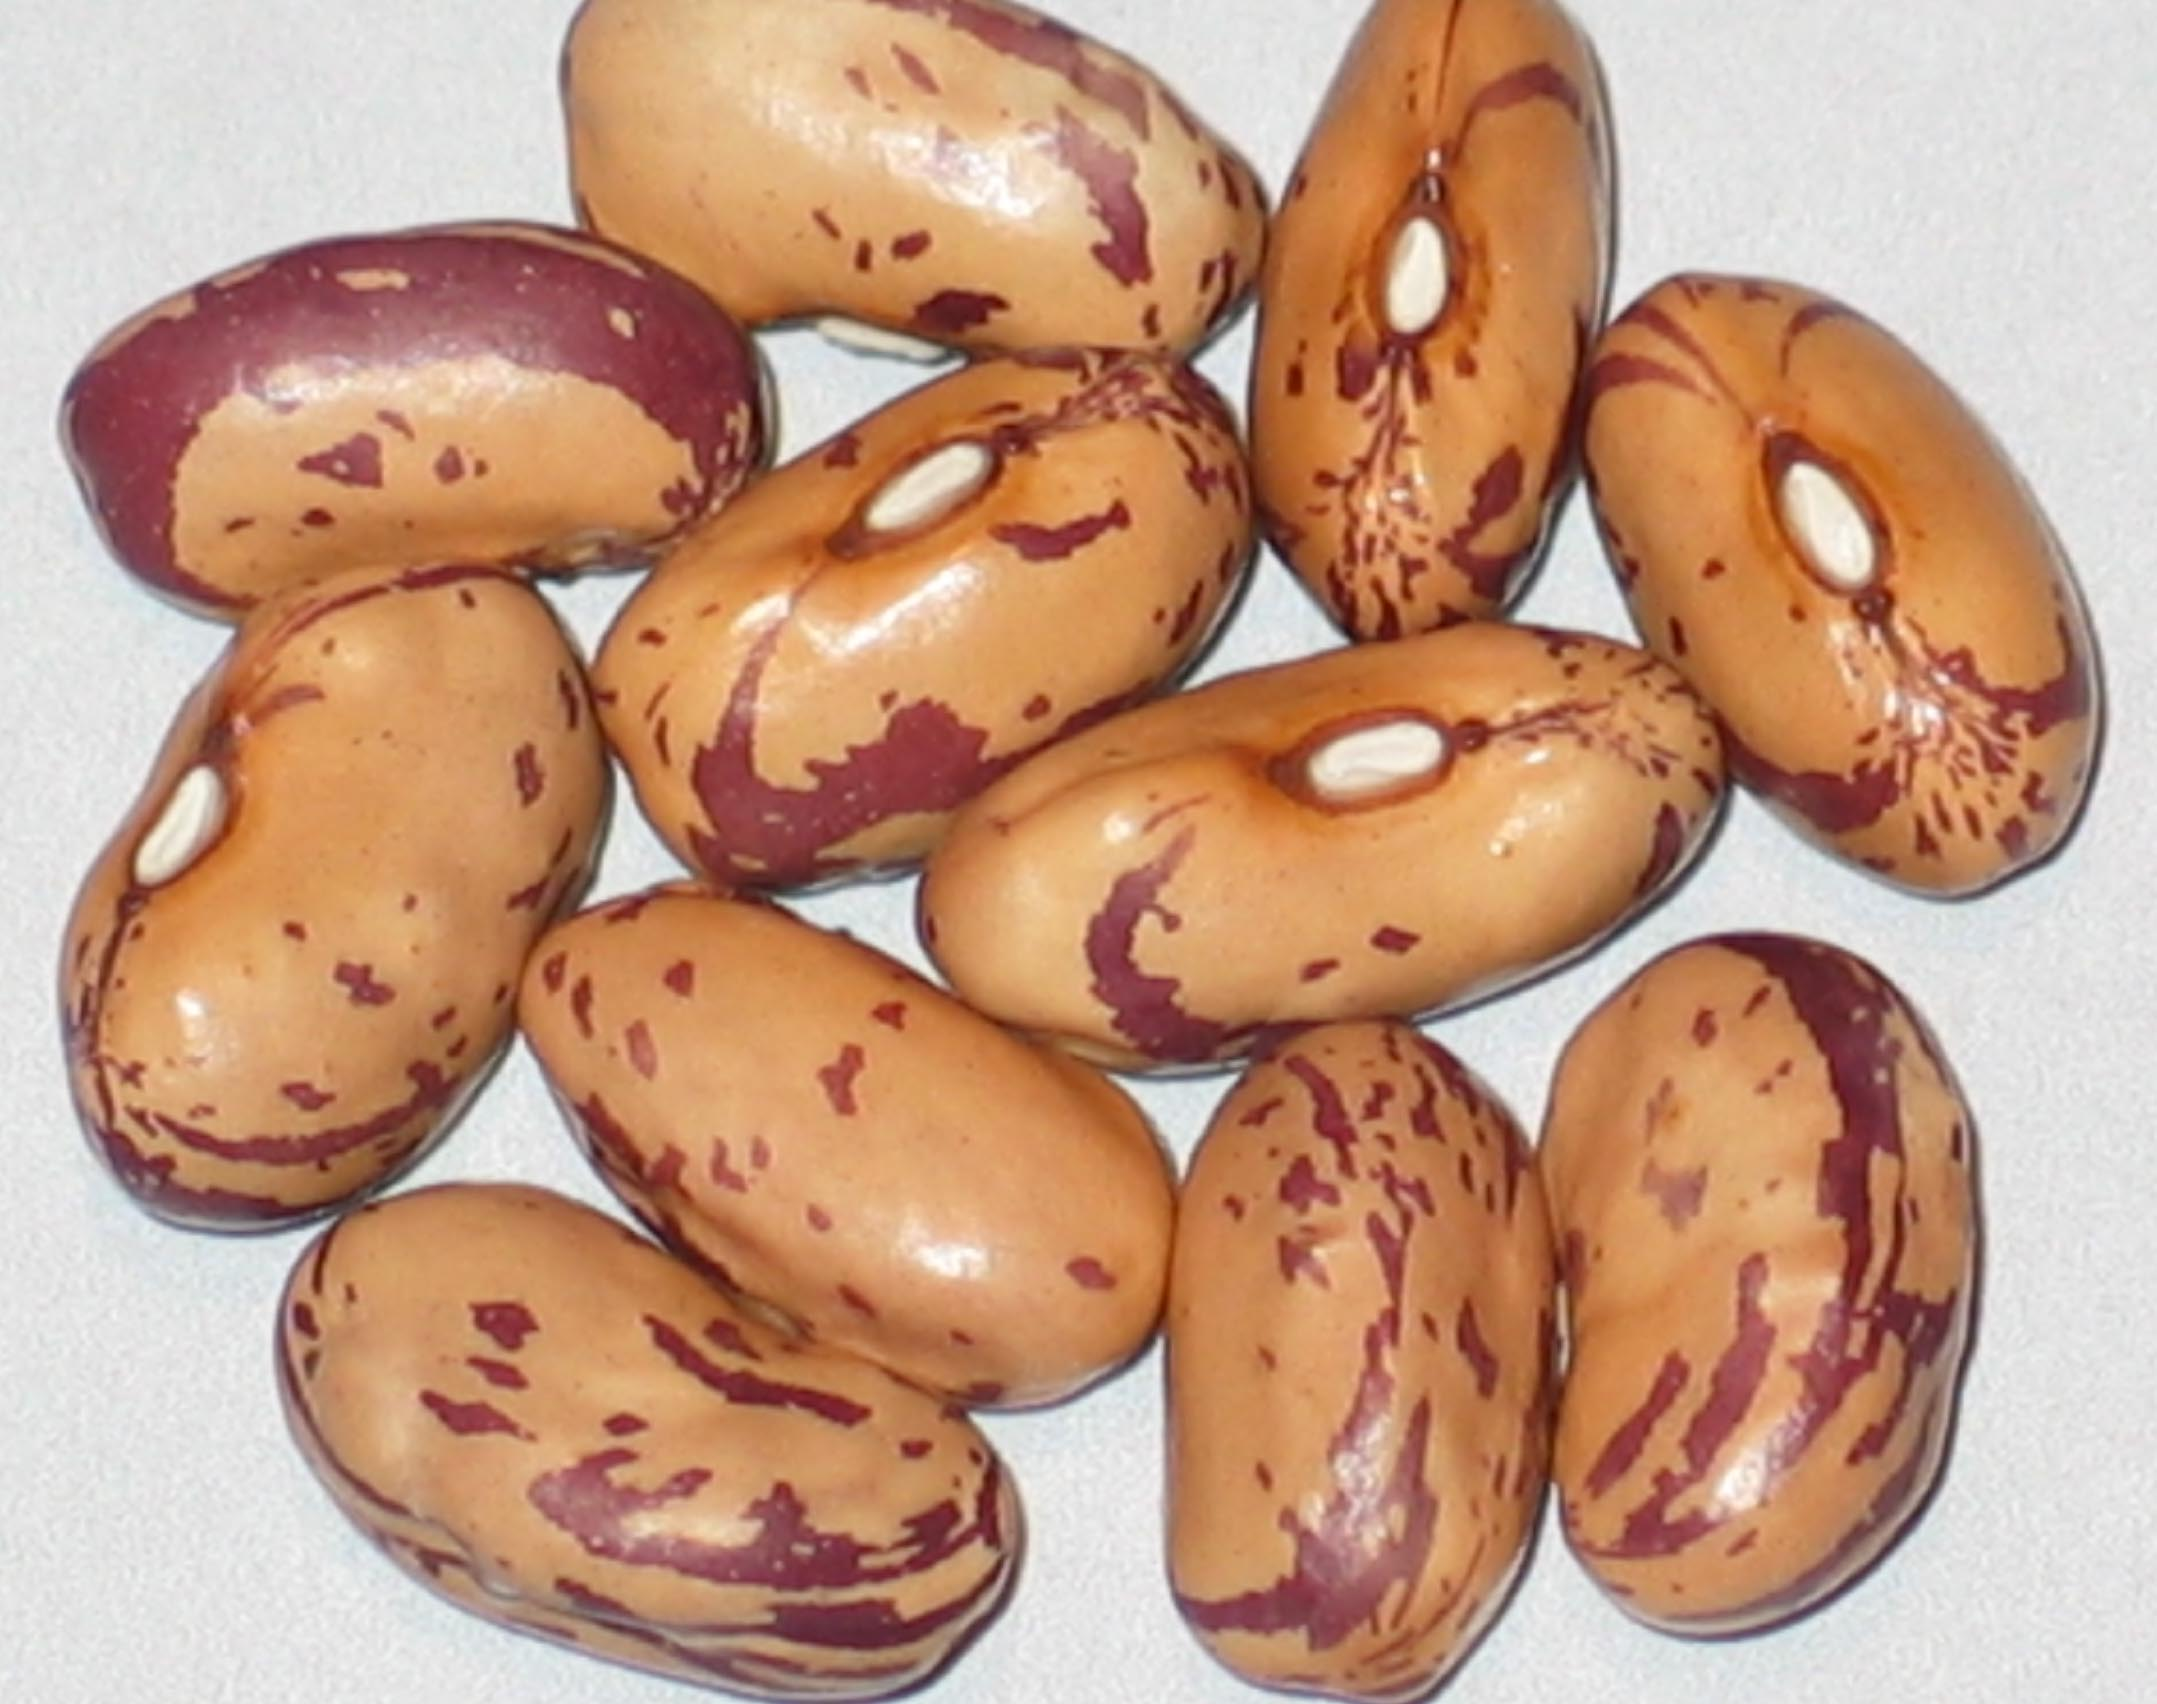 image of Jas beans